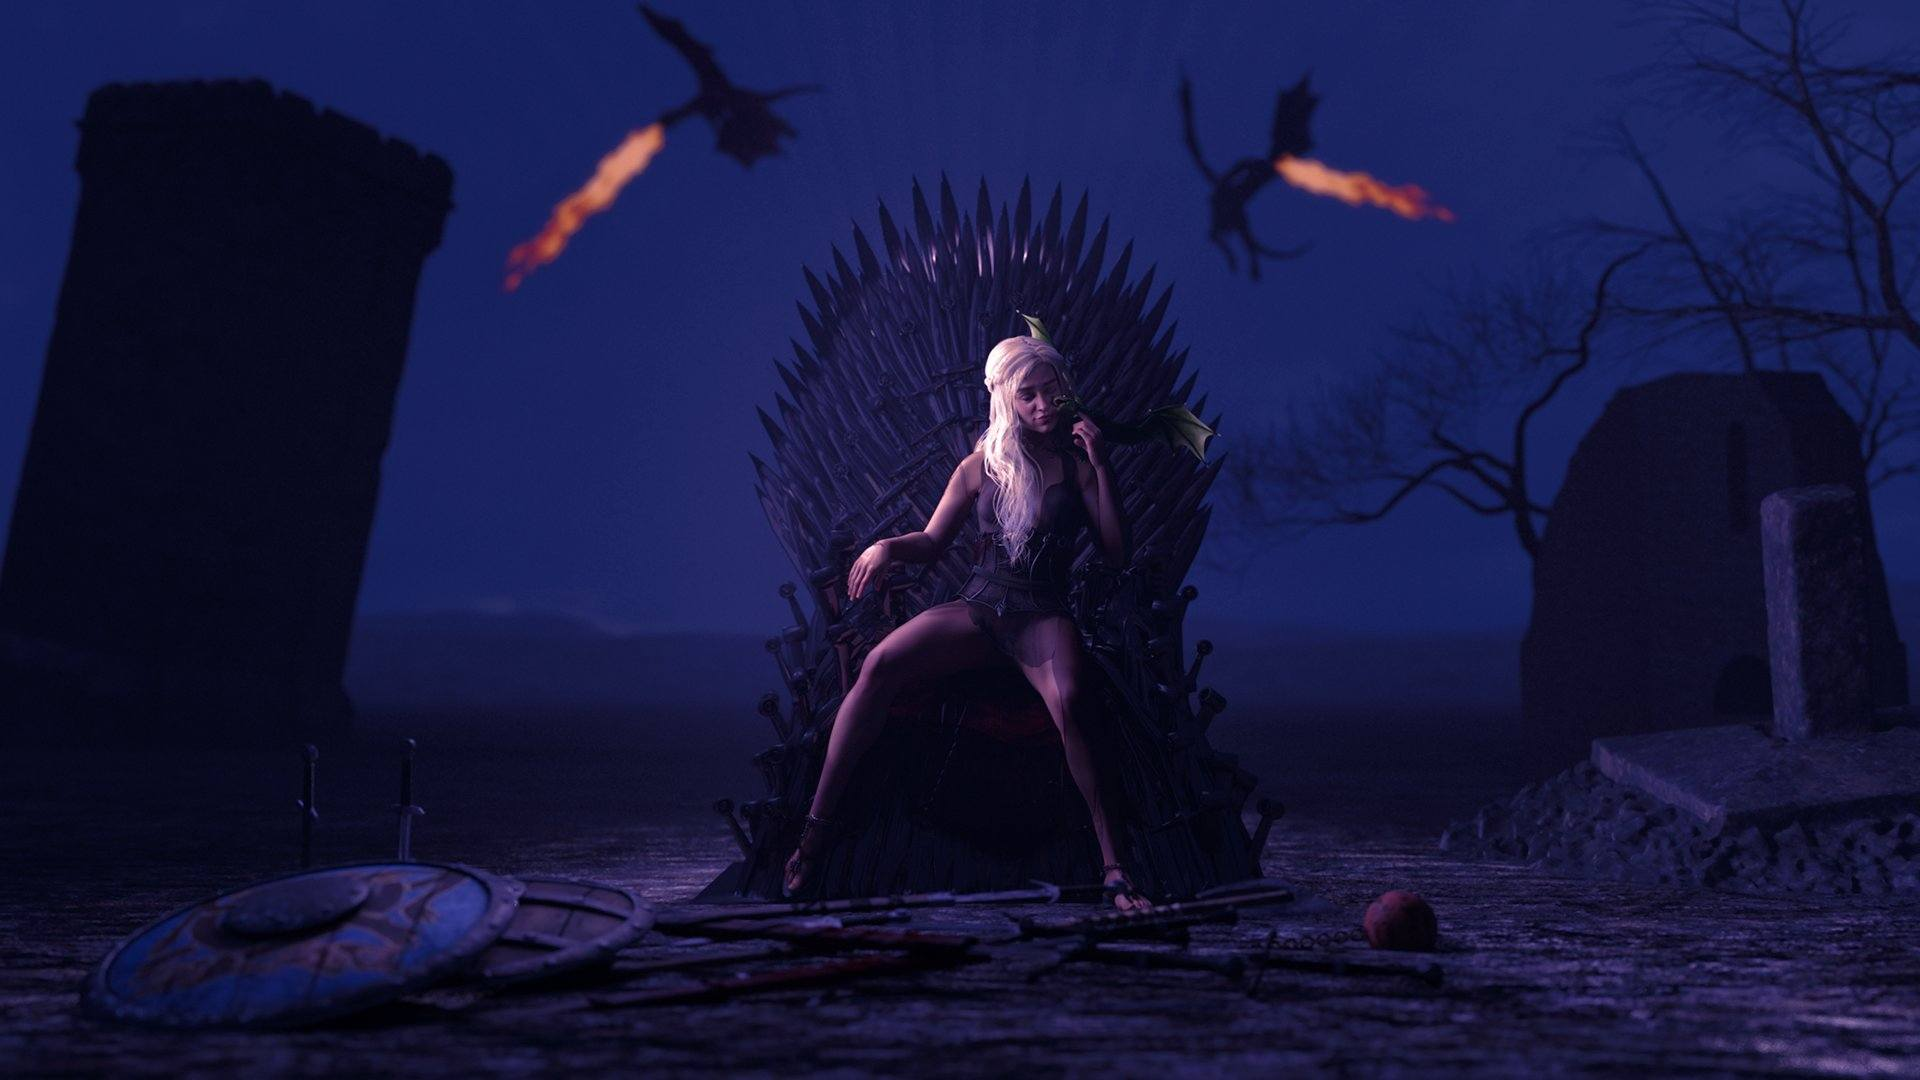 Whores of Thrones Adult Game Cover